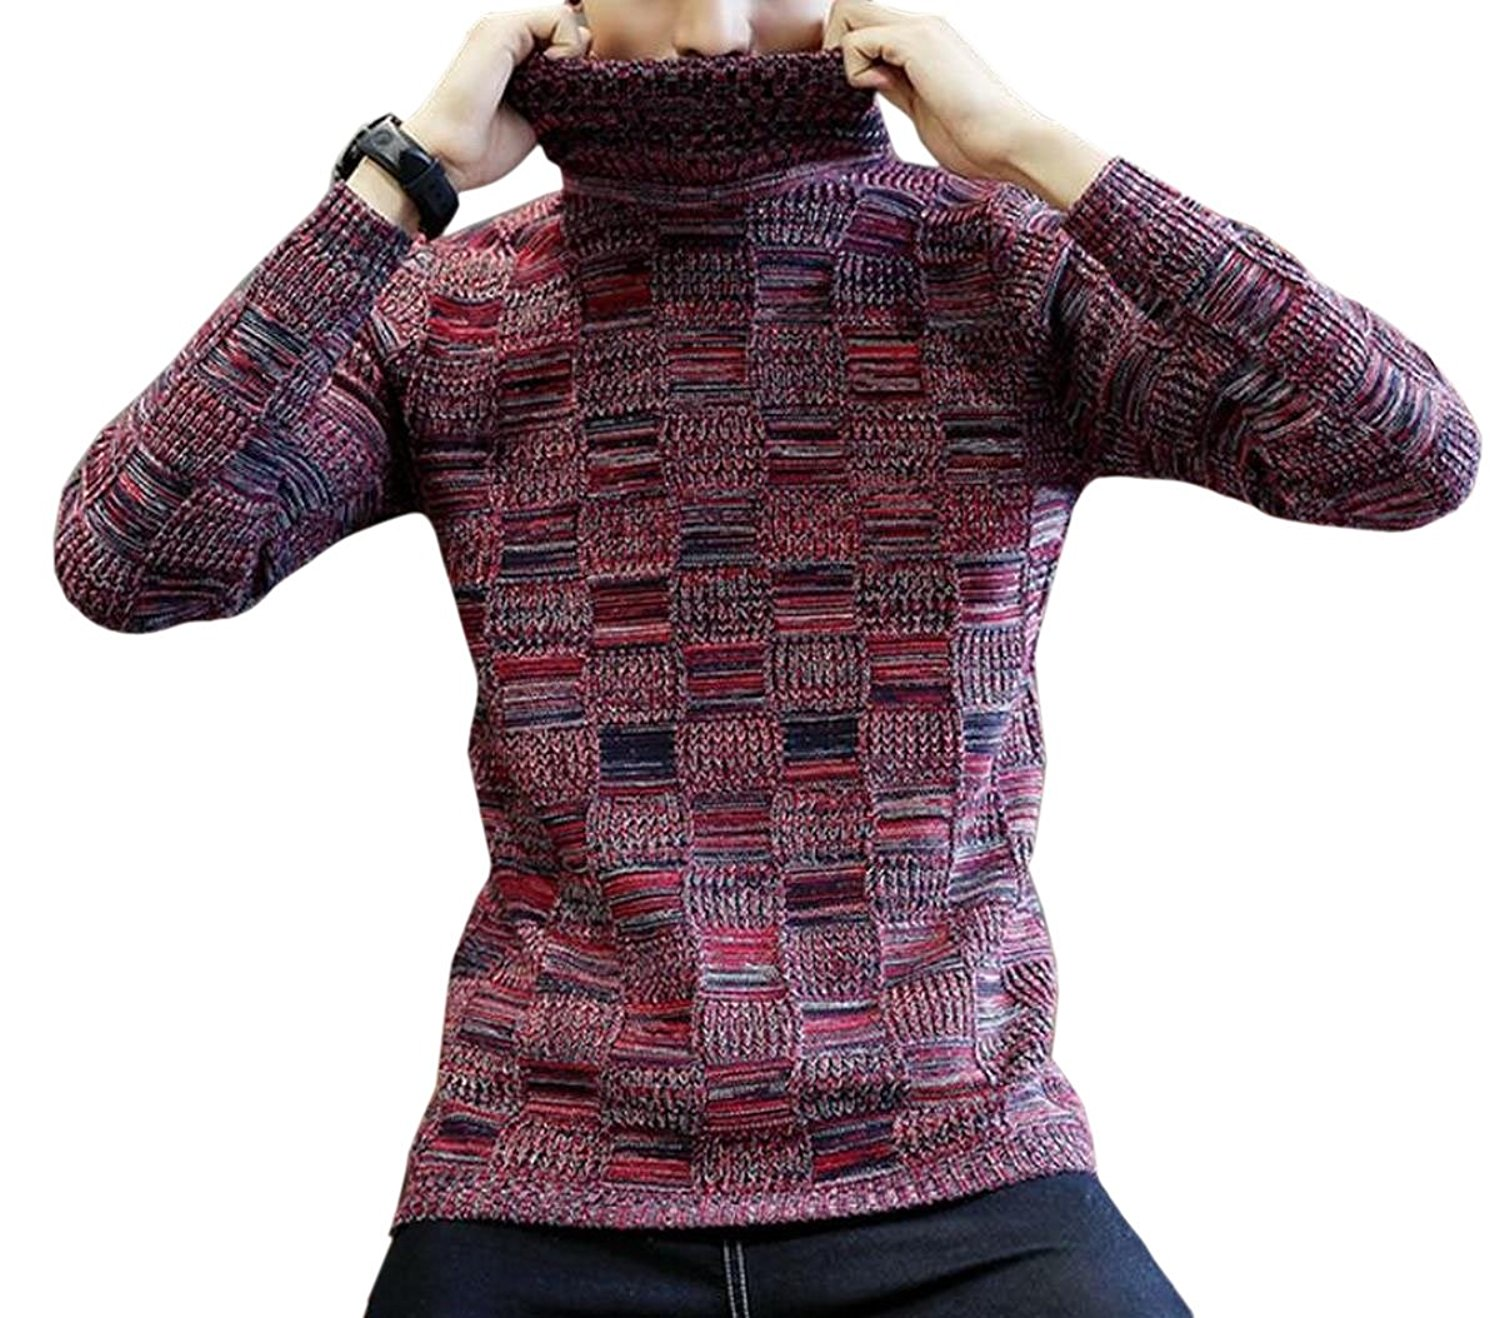 e495a1c7 Get Quotations · Jaycargogo Mens Custom Slim Fitted Turtleneck Long Sleeved  Wild Knit Sweaters